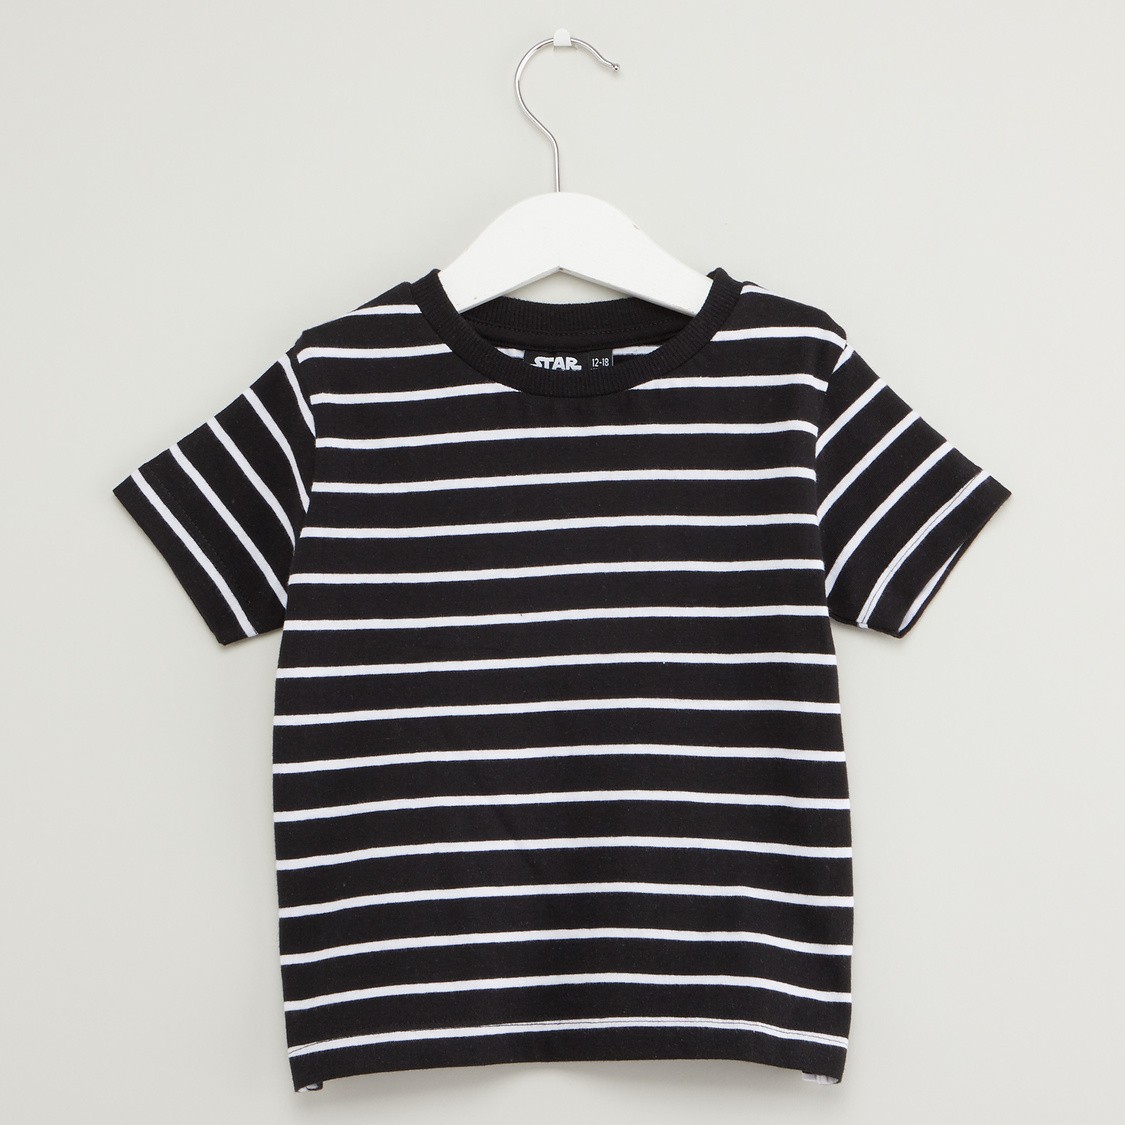 Star Wars Striped Round Neck T-shirt with Dungarees